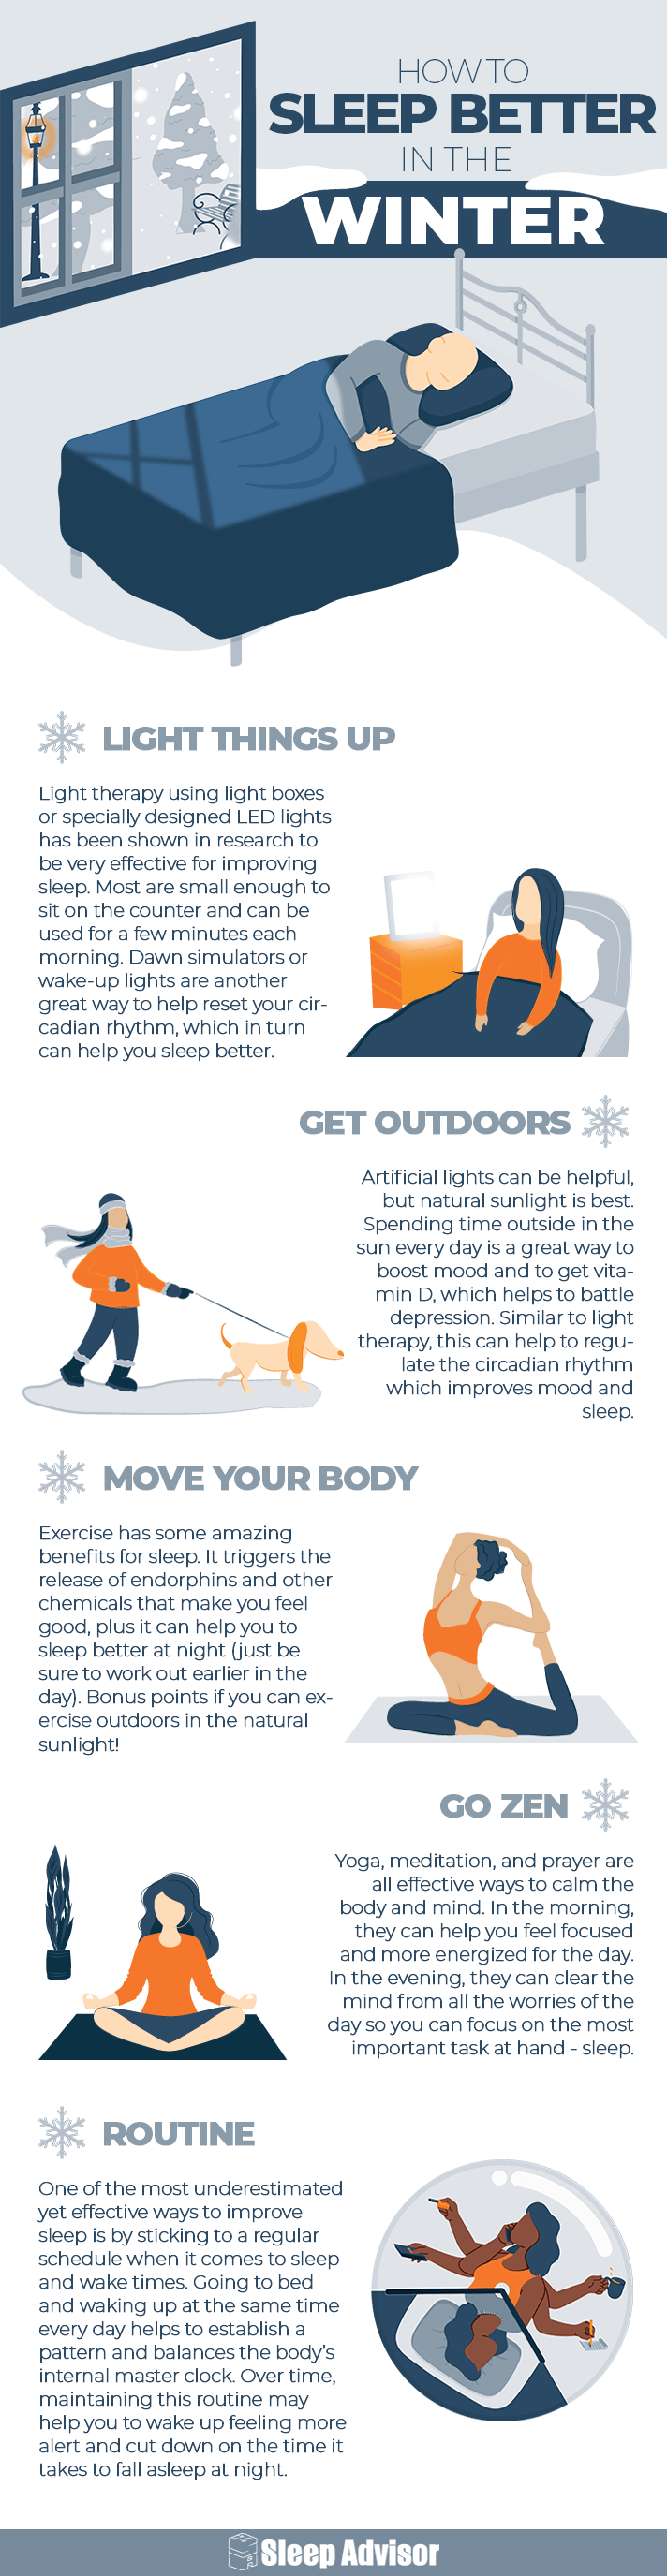 How to Sleep Better in the Winter Infographic